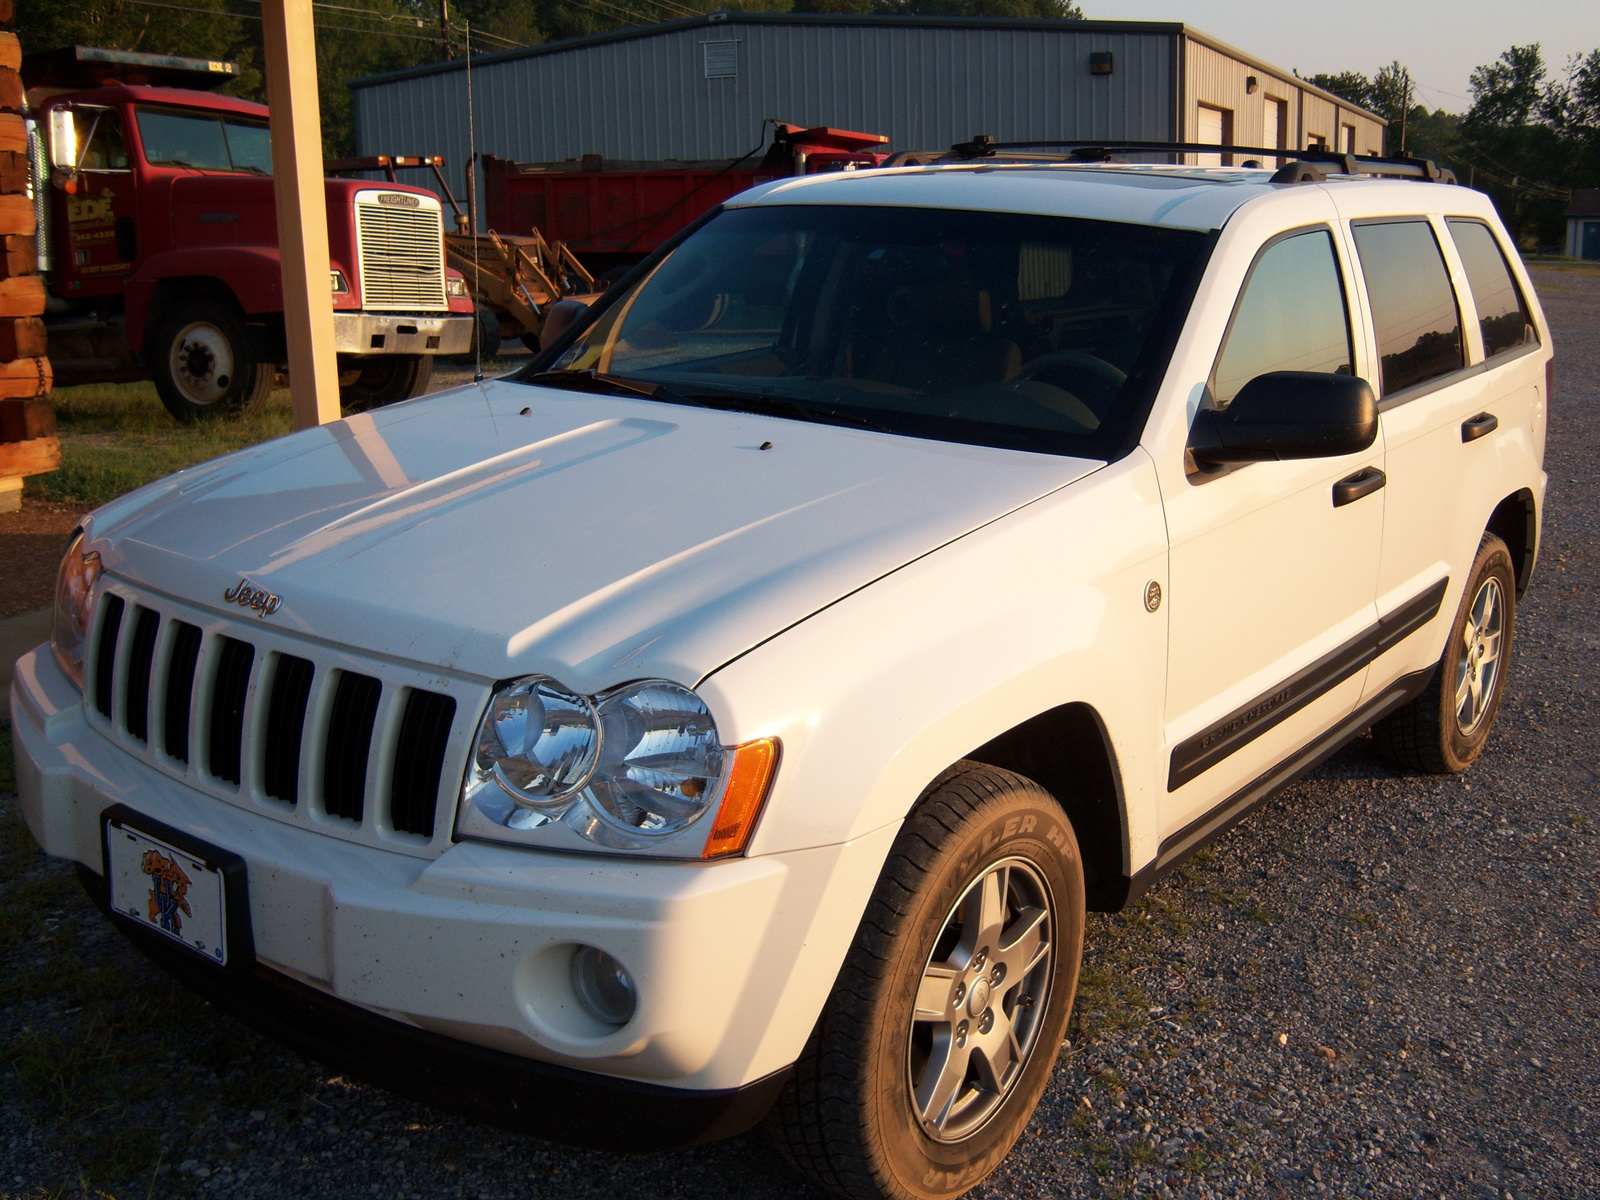 2004 Jeep Grand Cherokee Laredo 4WD picture